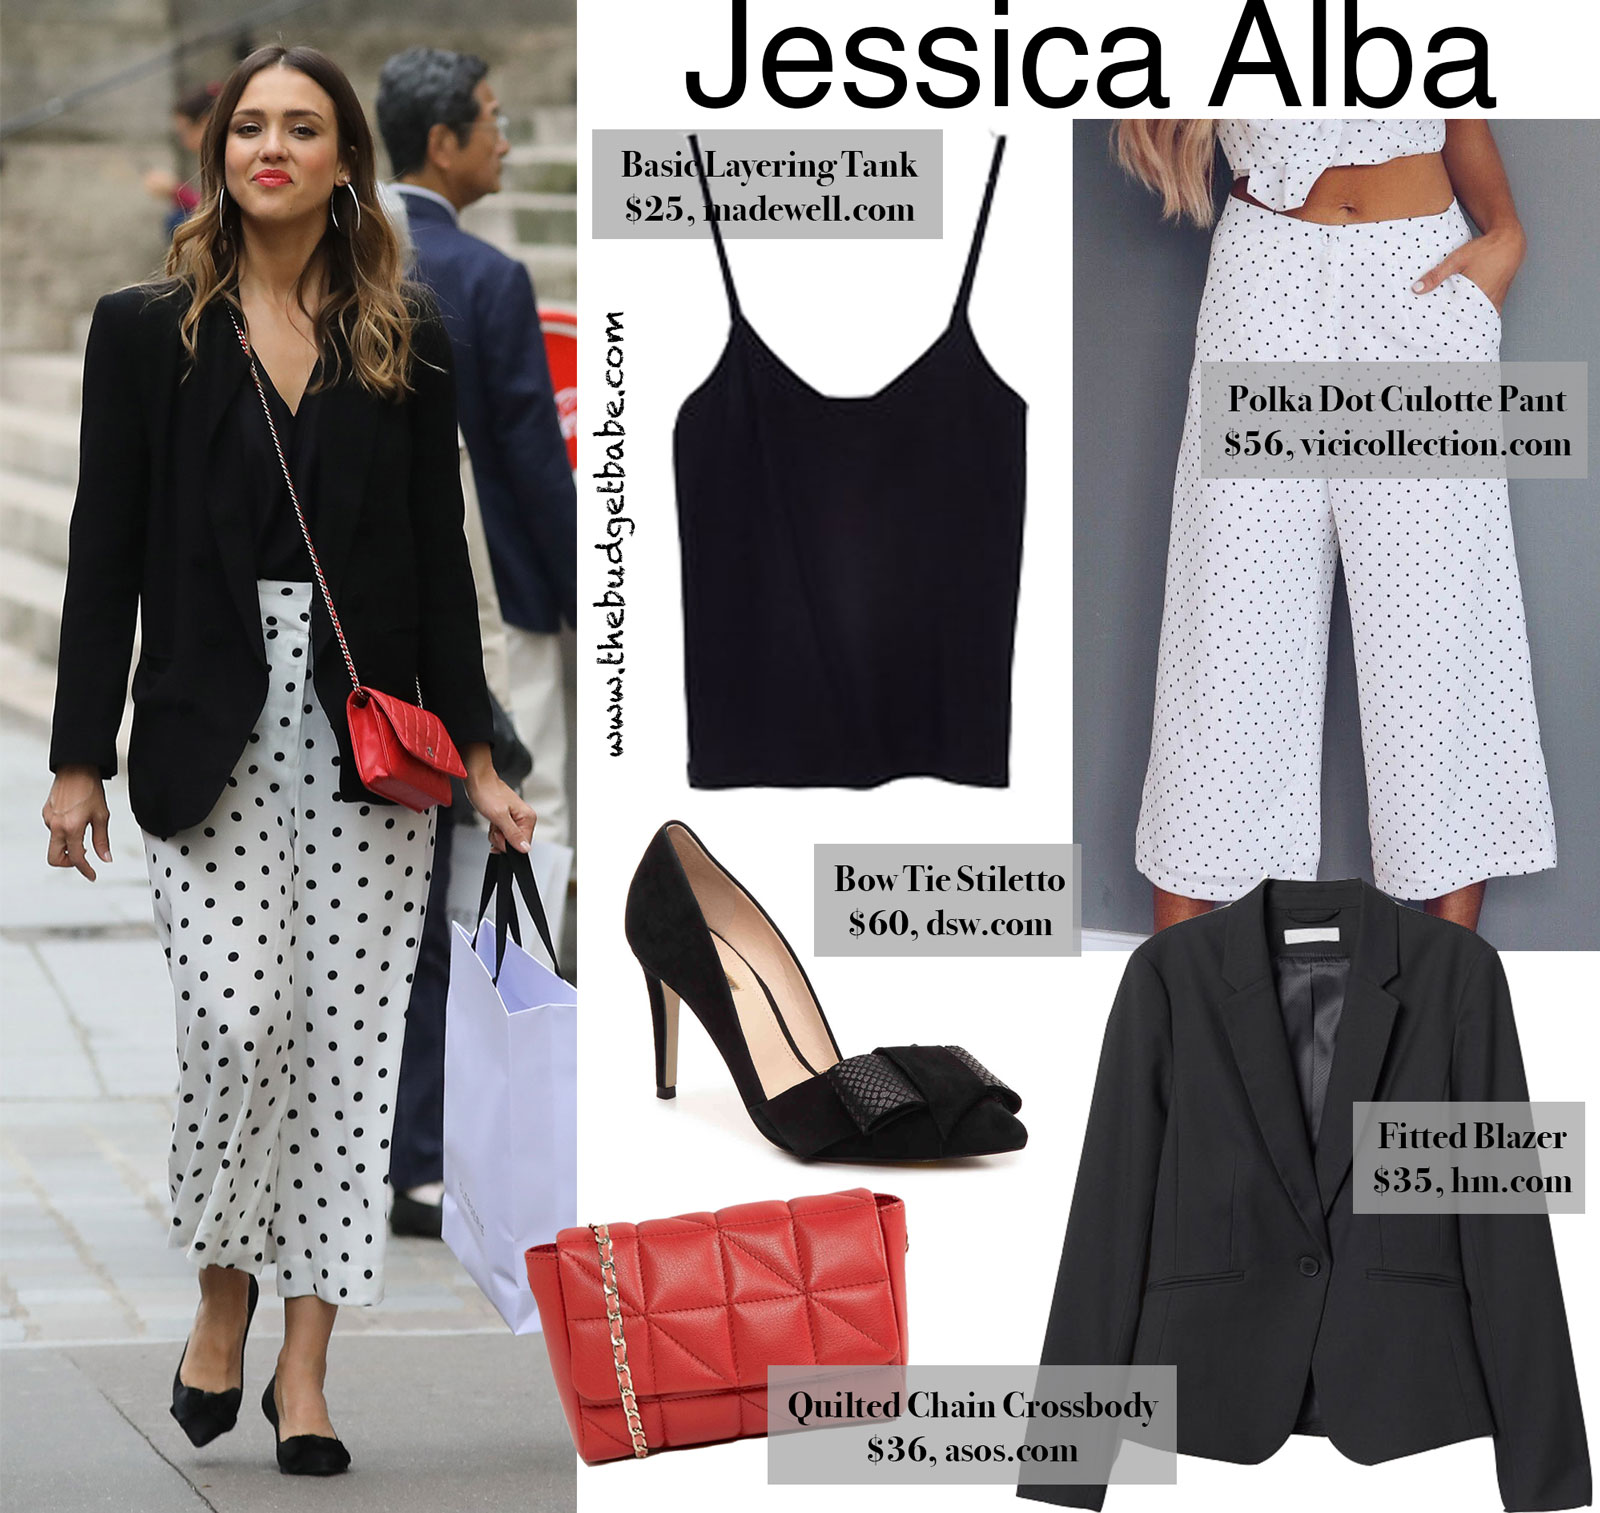 Jessica Alba Polka Dot Culotte Pants Look for Less